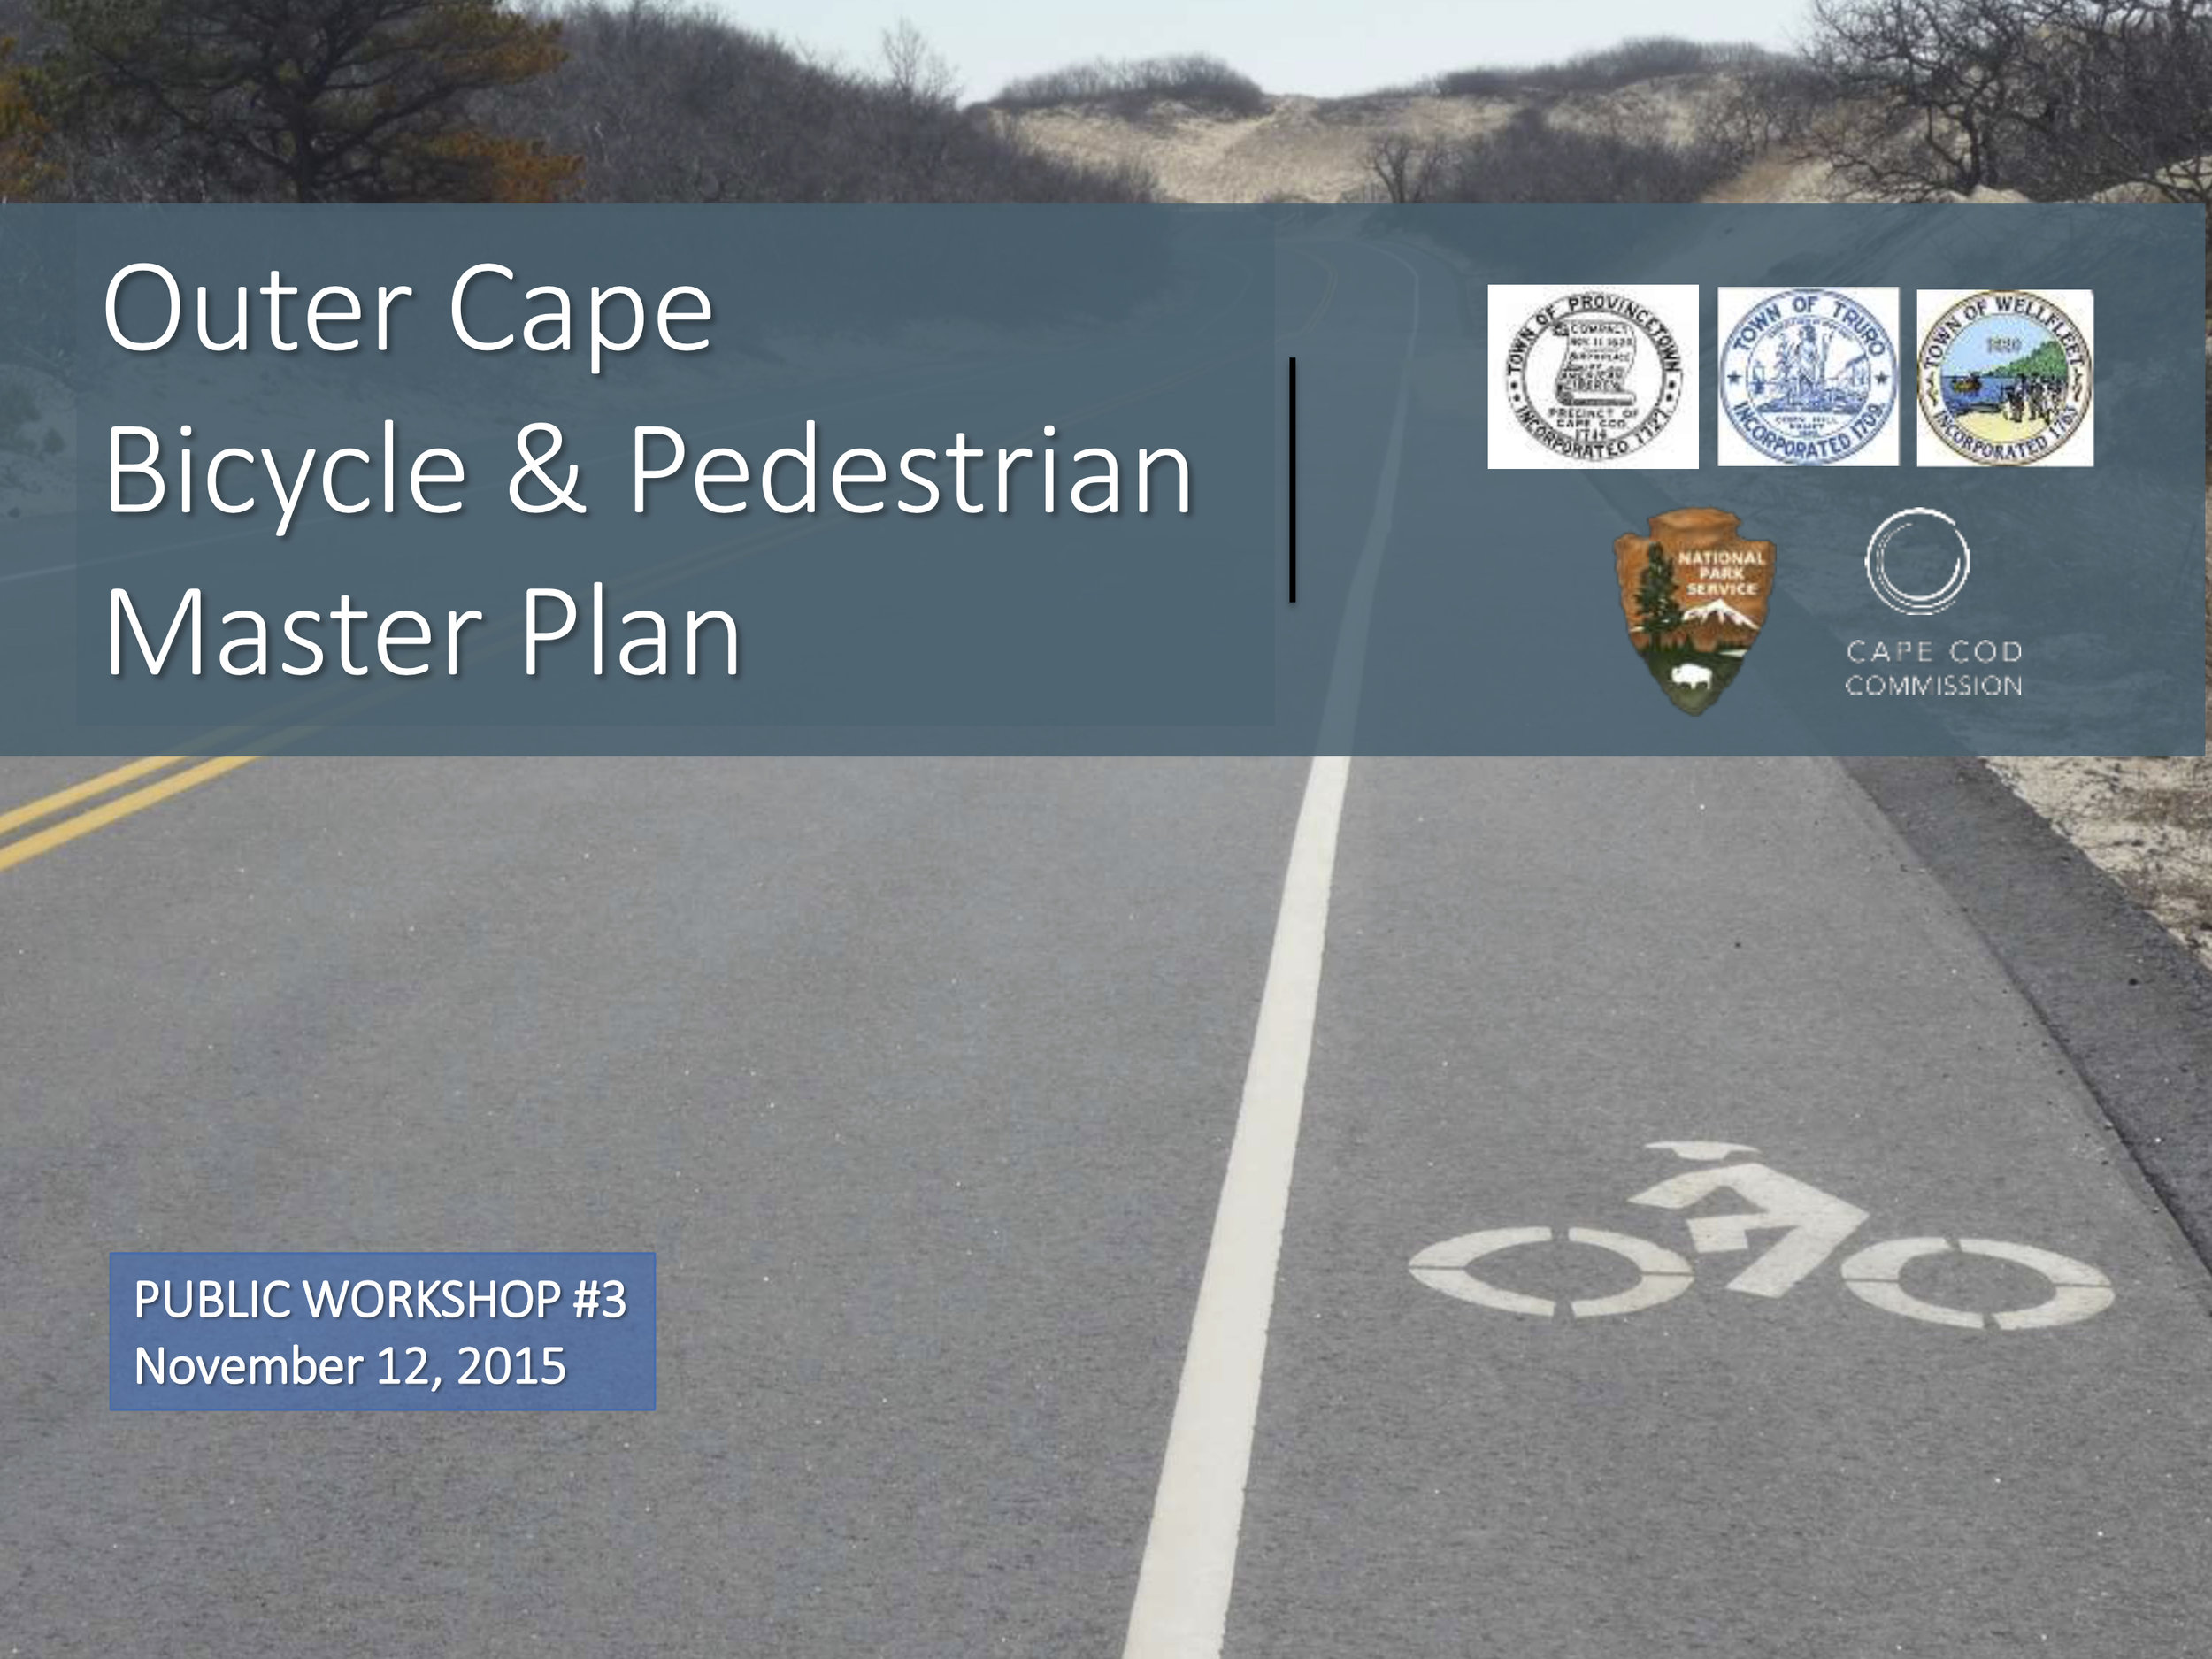 The cover slide from the Outer Cape Bicycle & Pedestrian Master Plan Workshop held on November 12, 2015 in Provincetown.